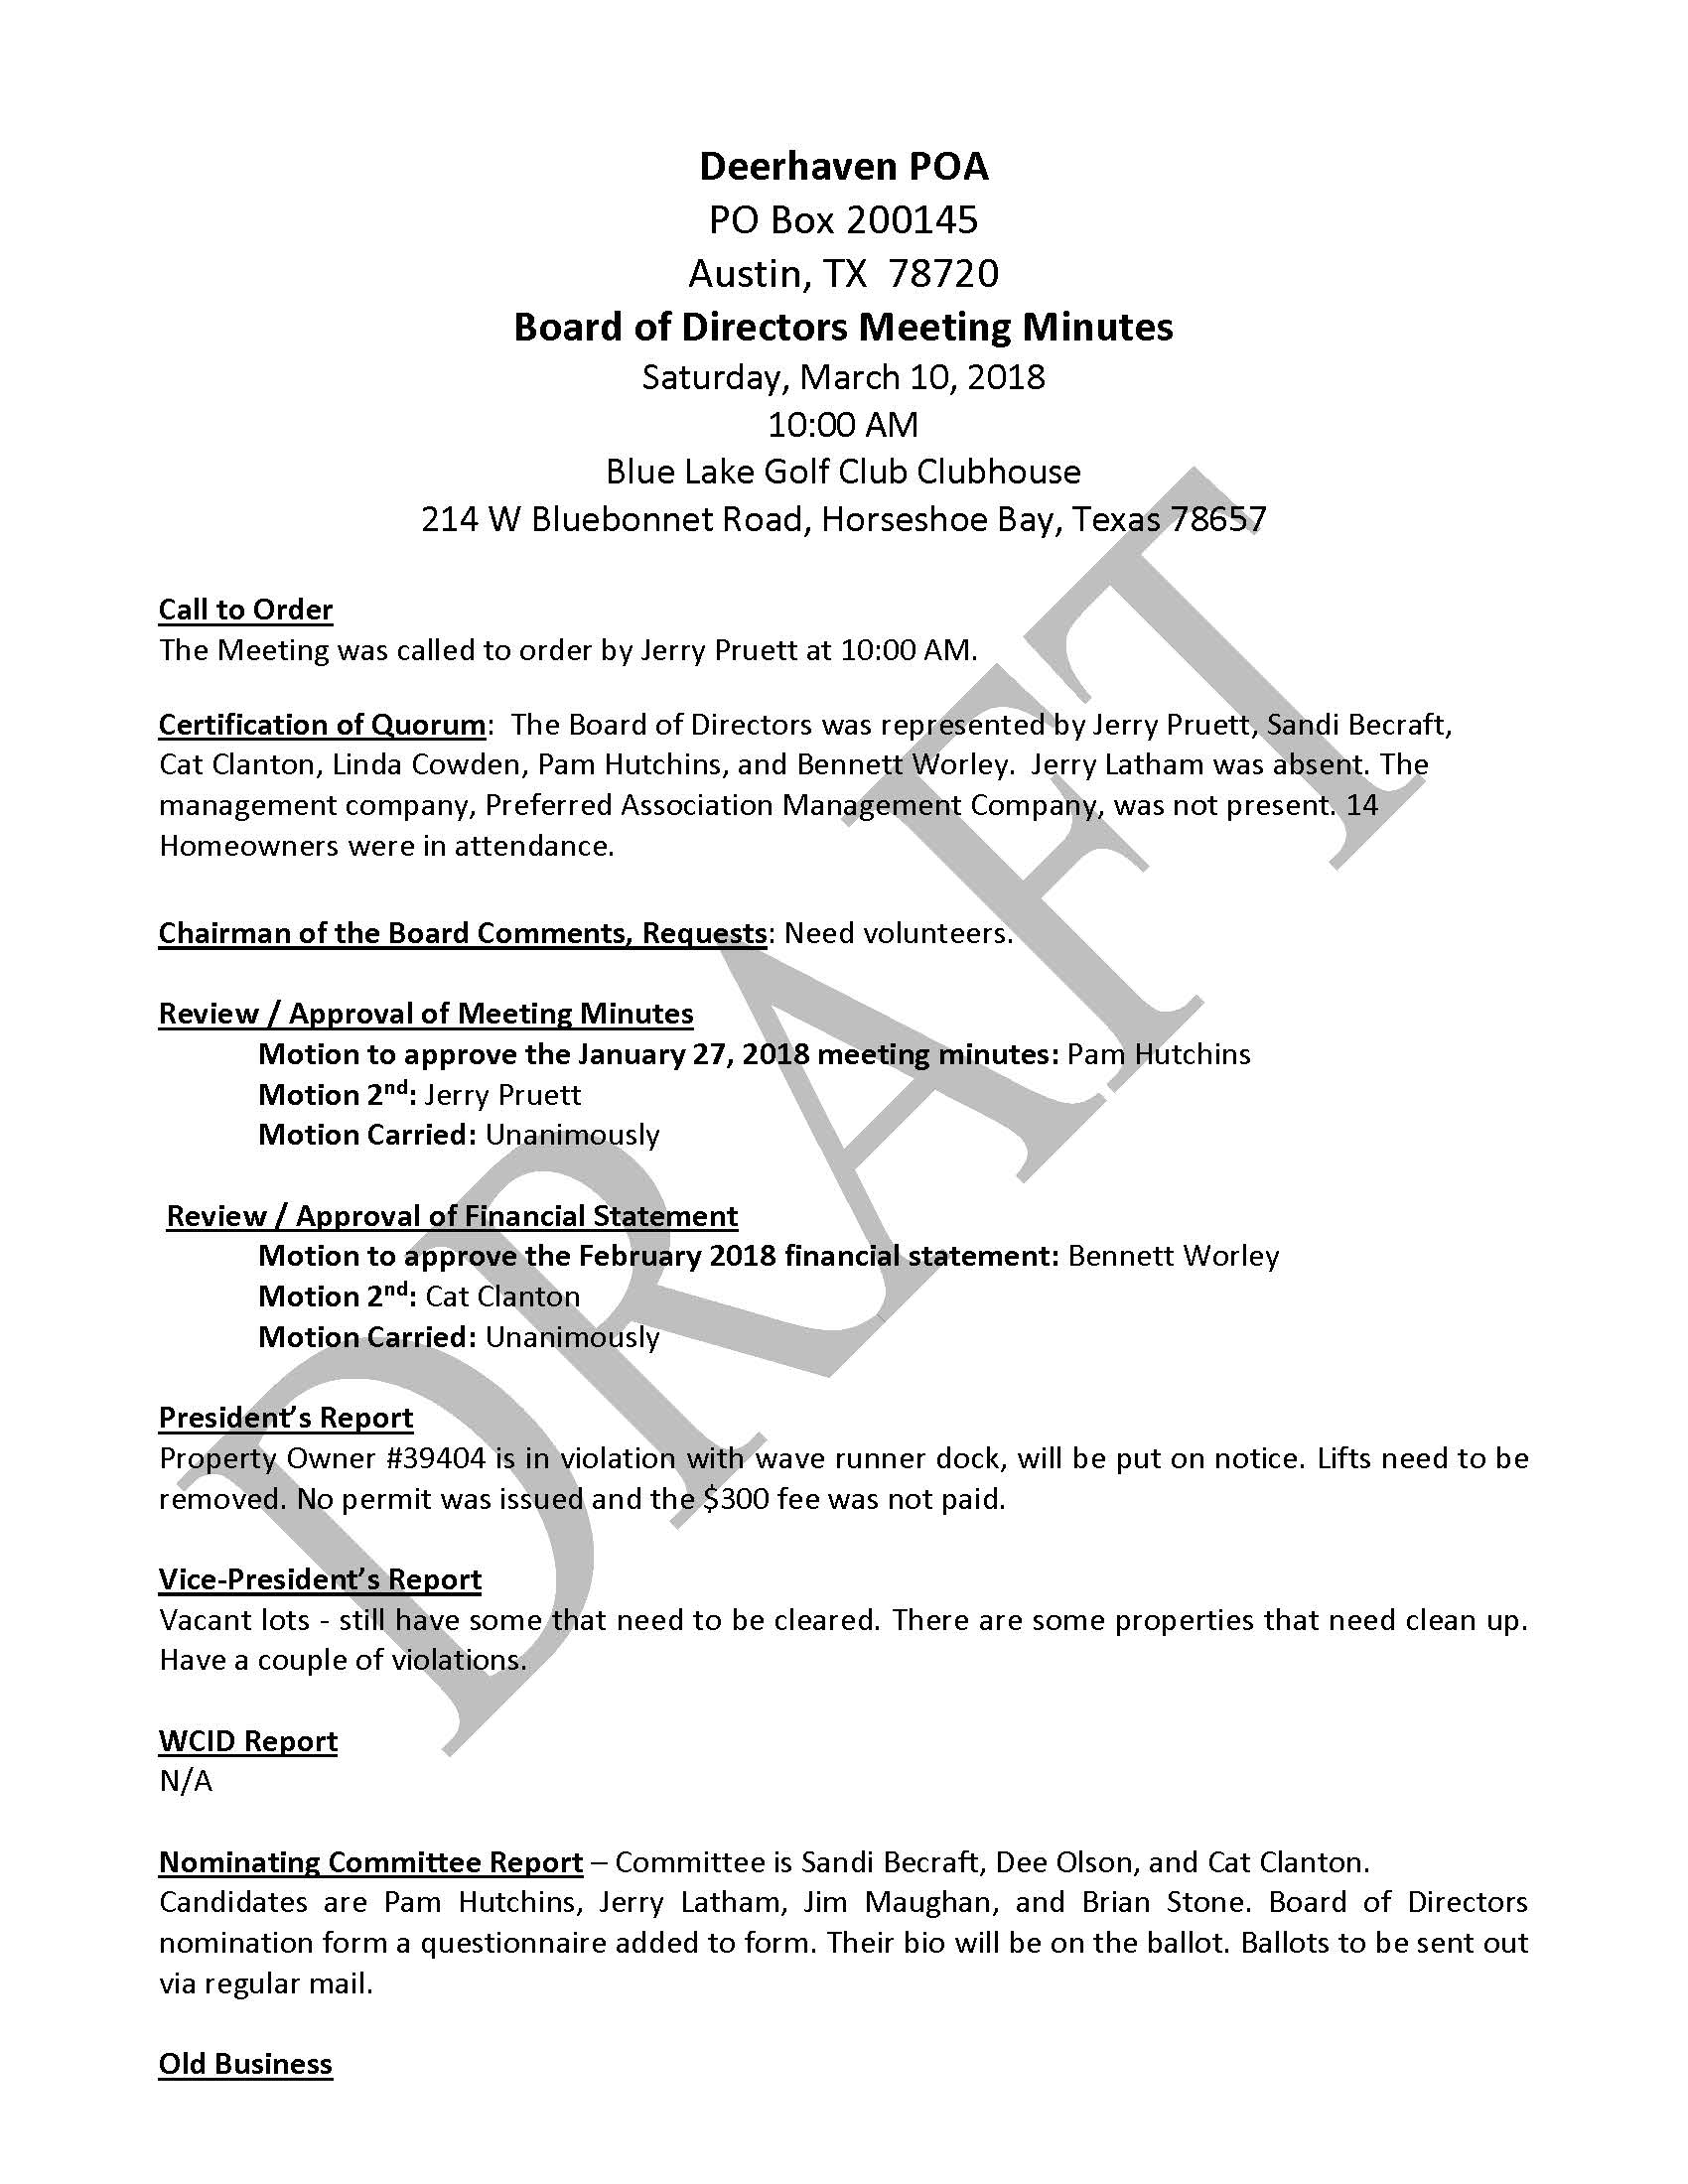 board meeting minutes 3  10  18